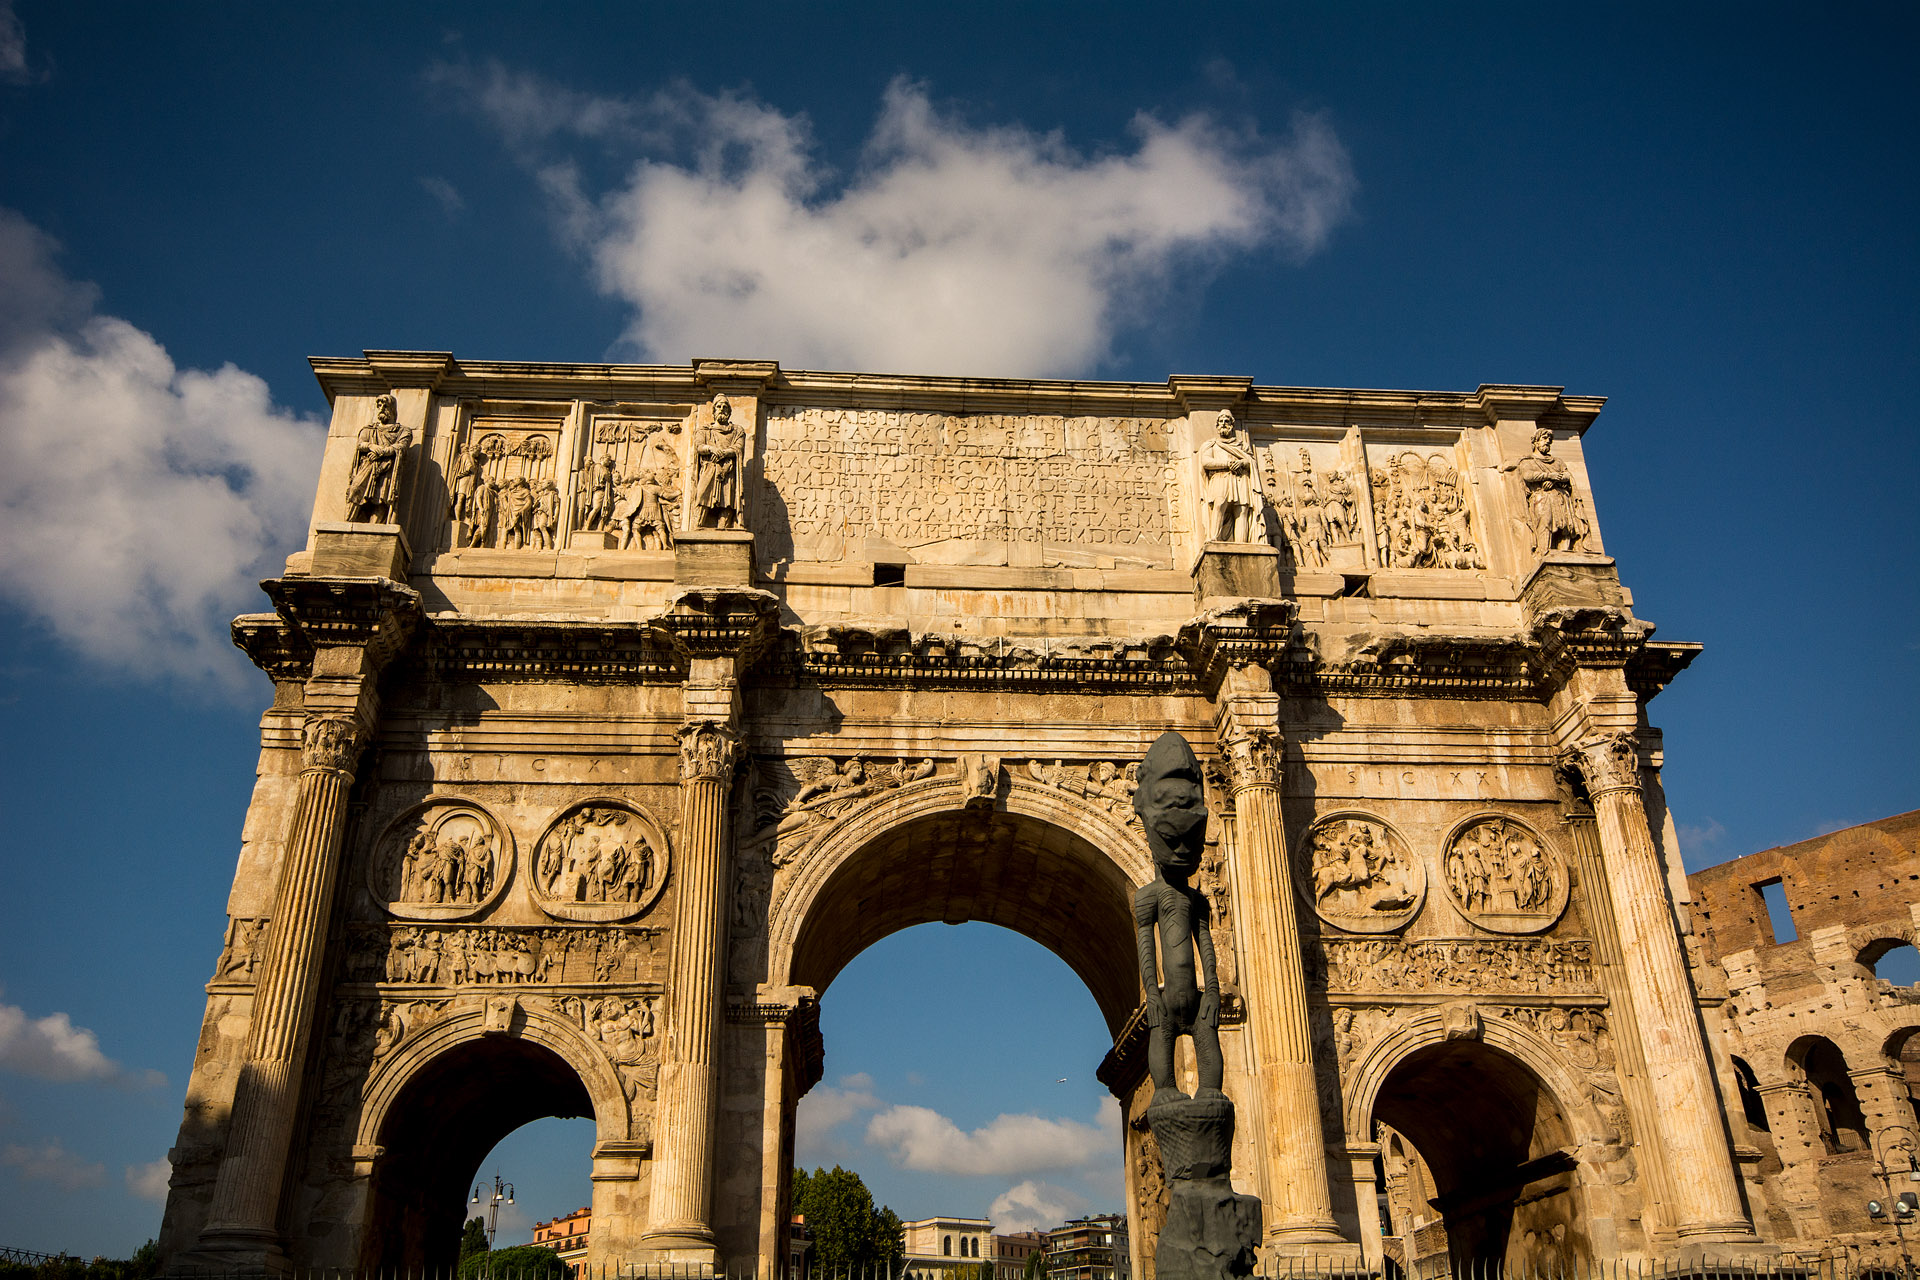 Arch of Constantine (main entrance)